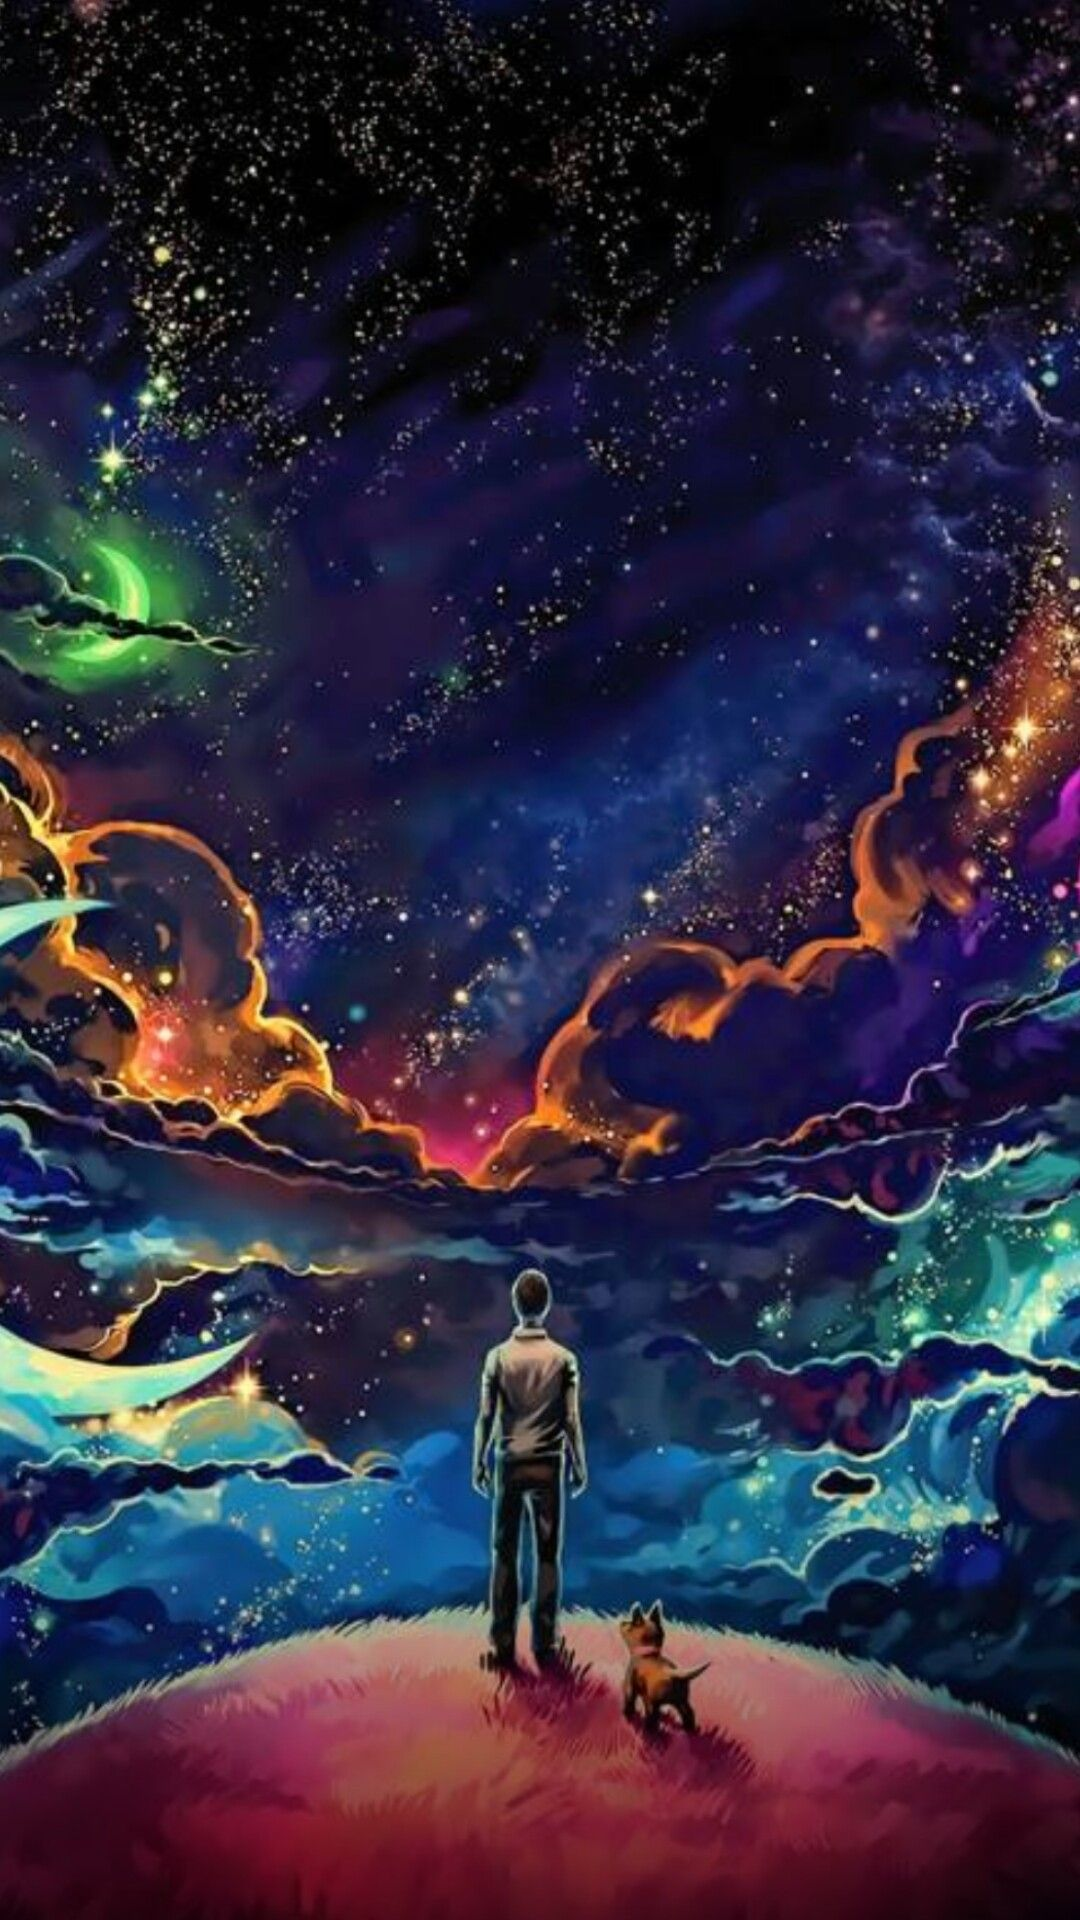 Pin By Bme Fonseca Bruno On Space Art Galaxy Wallpaper Man And Dog Art Wallpaper